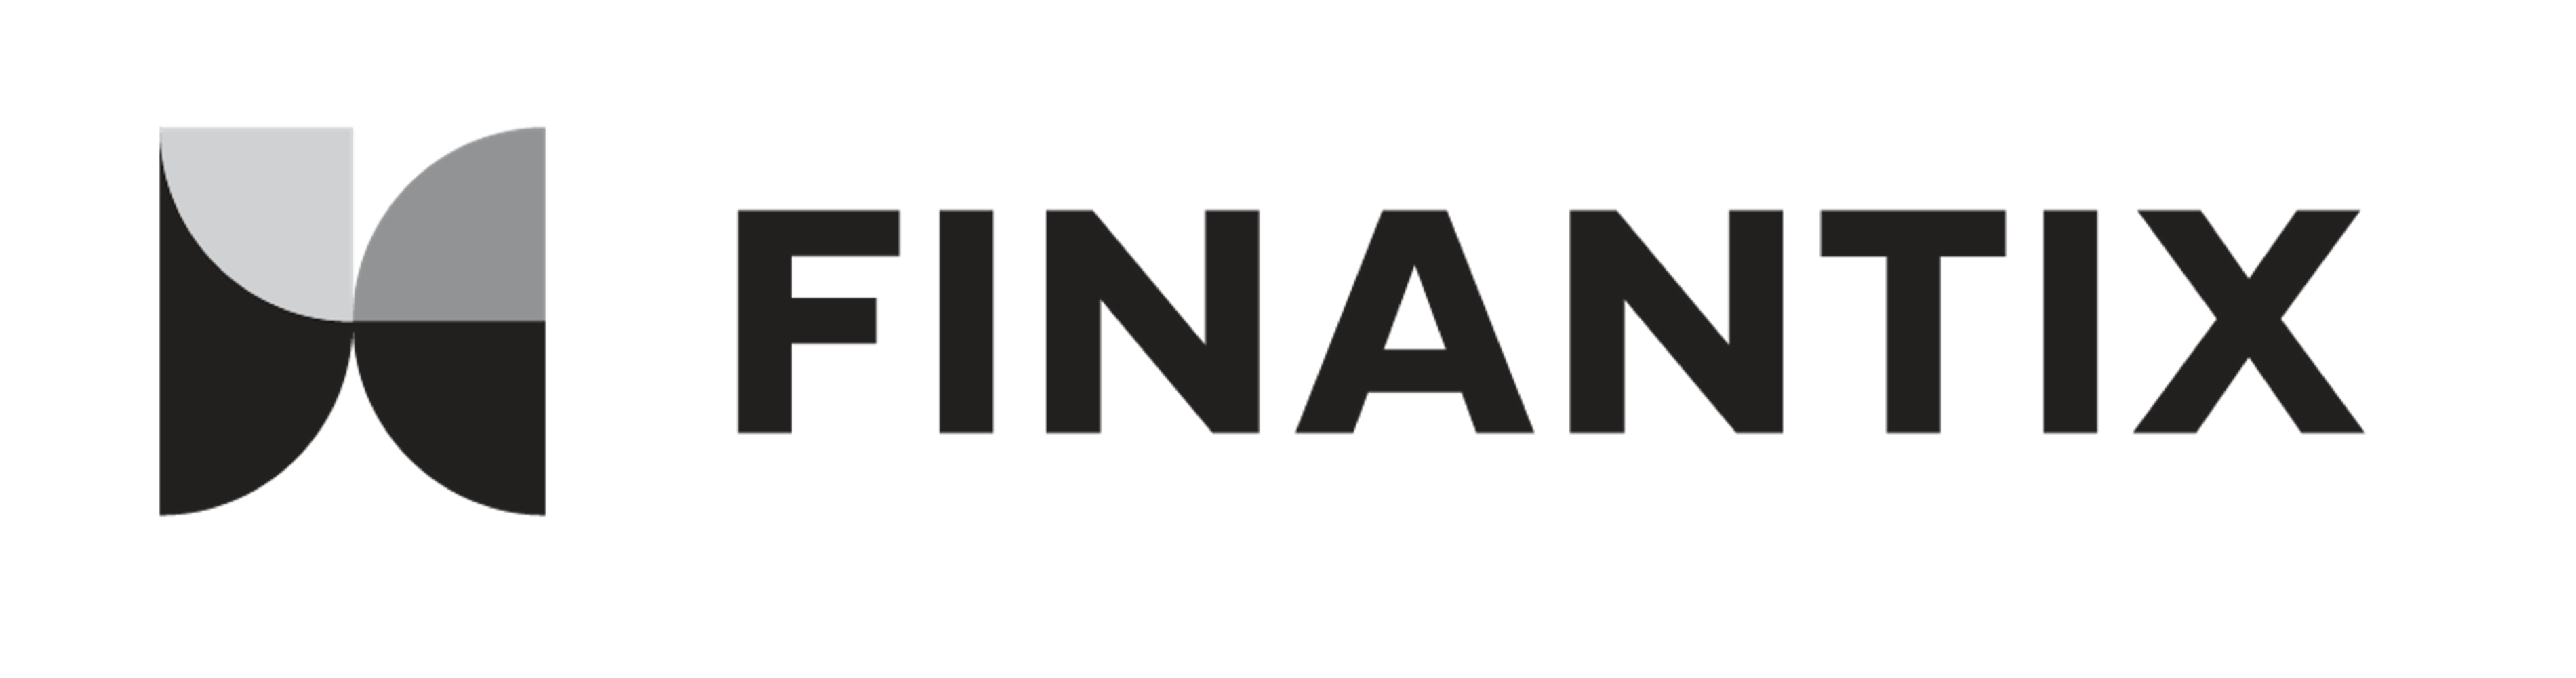 Finantix further strengthens Asian and European capabilities with senior appointments in Singapore and the UK